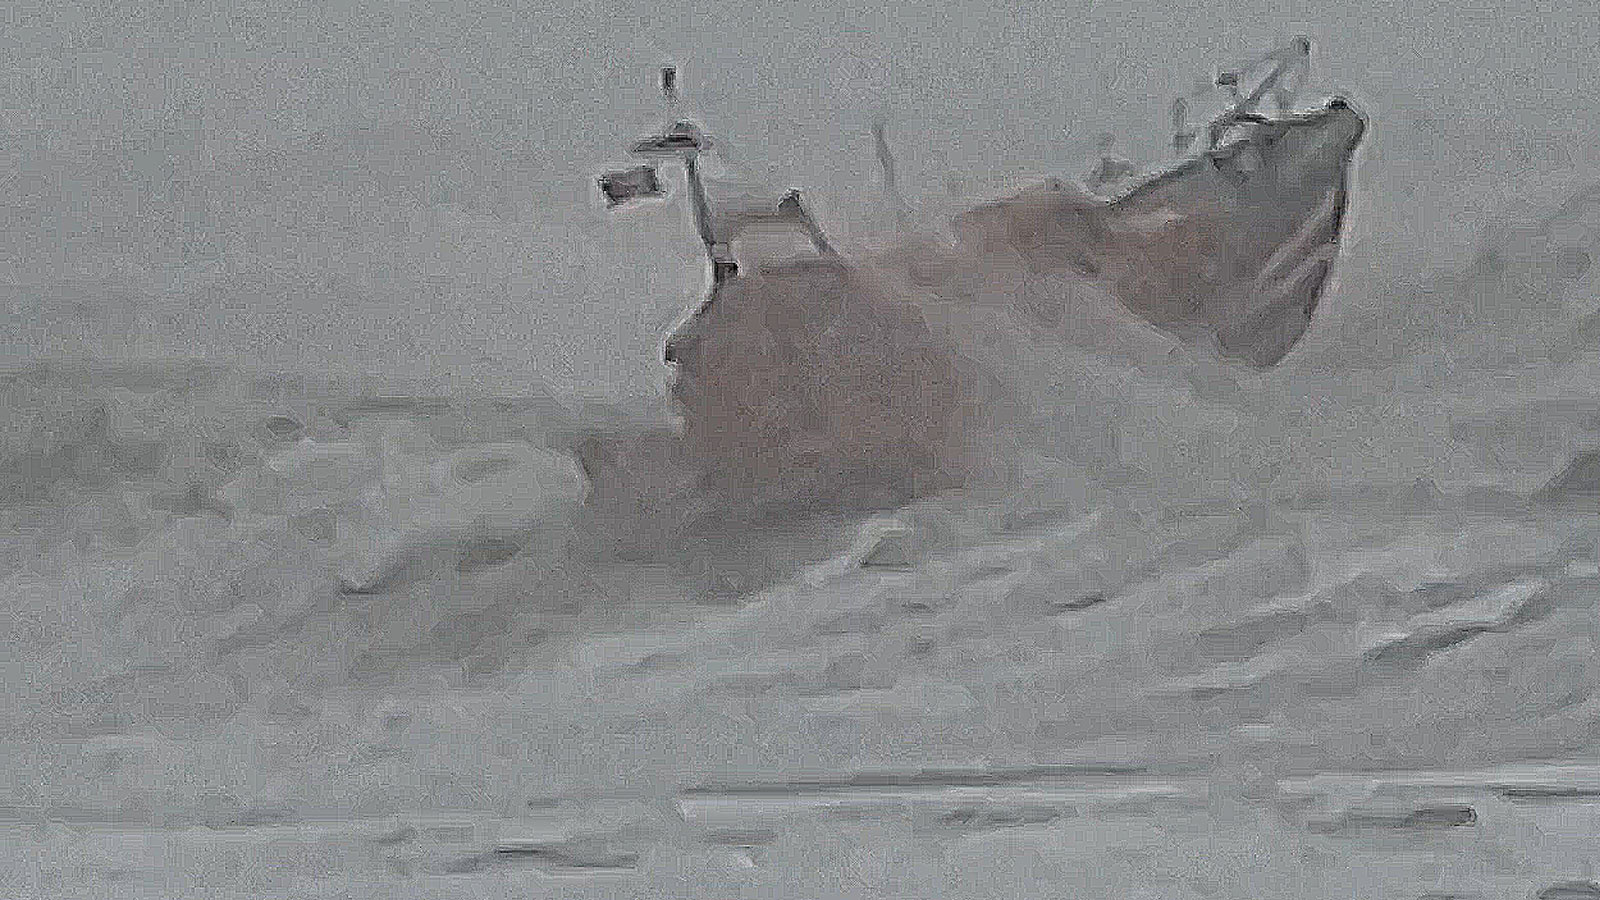 Hastings lifeboat battling the waves during Storm Ciara